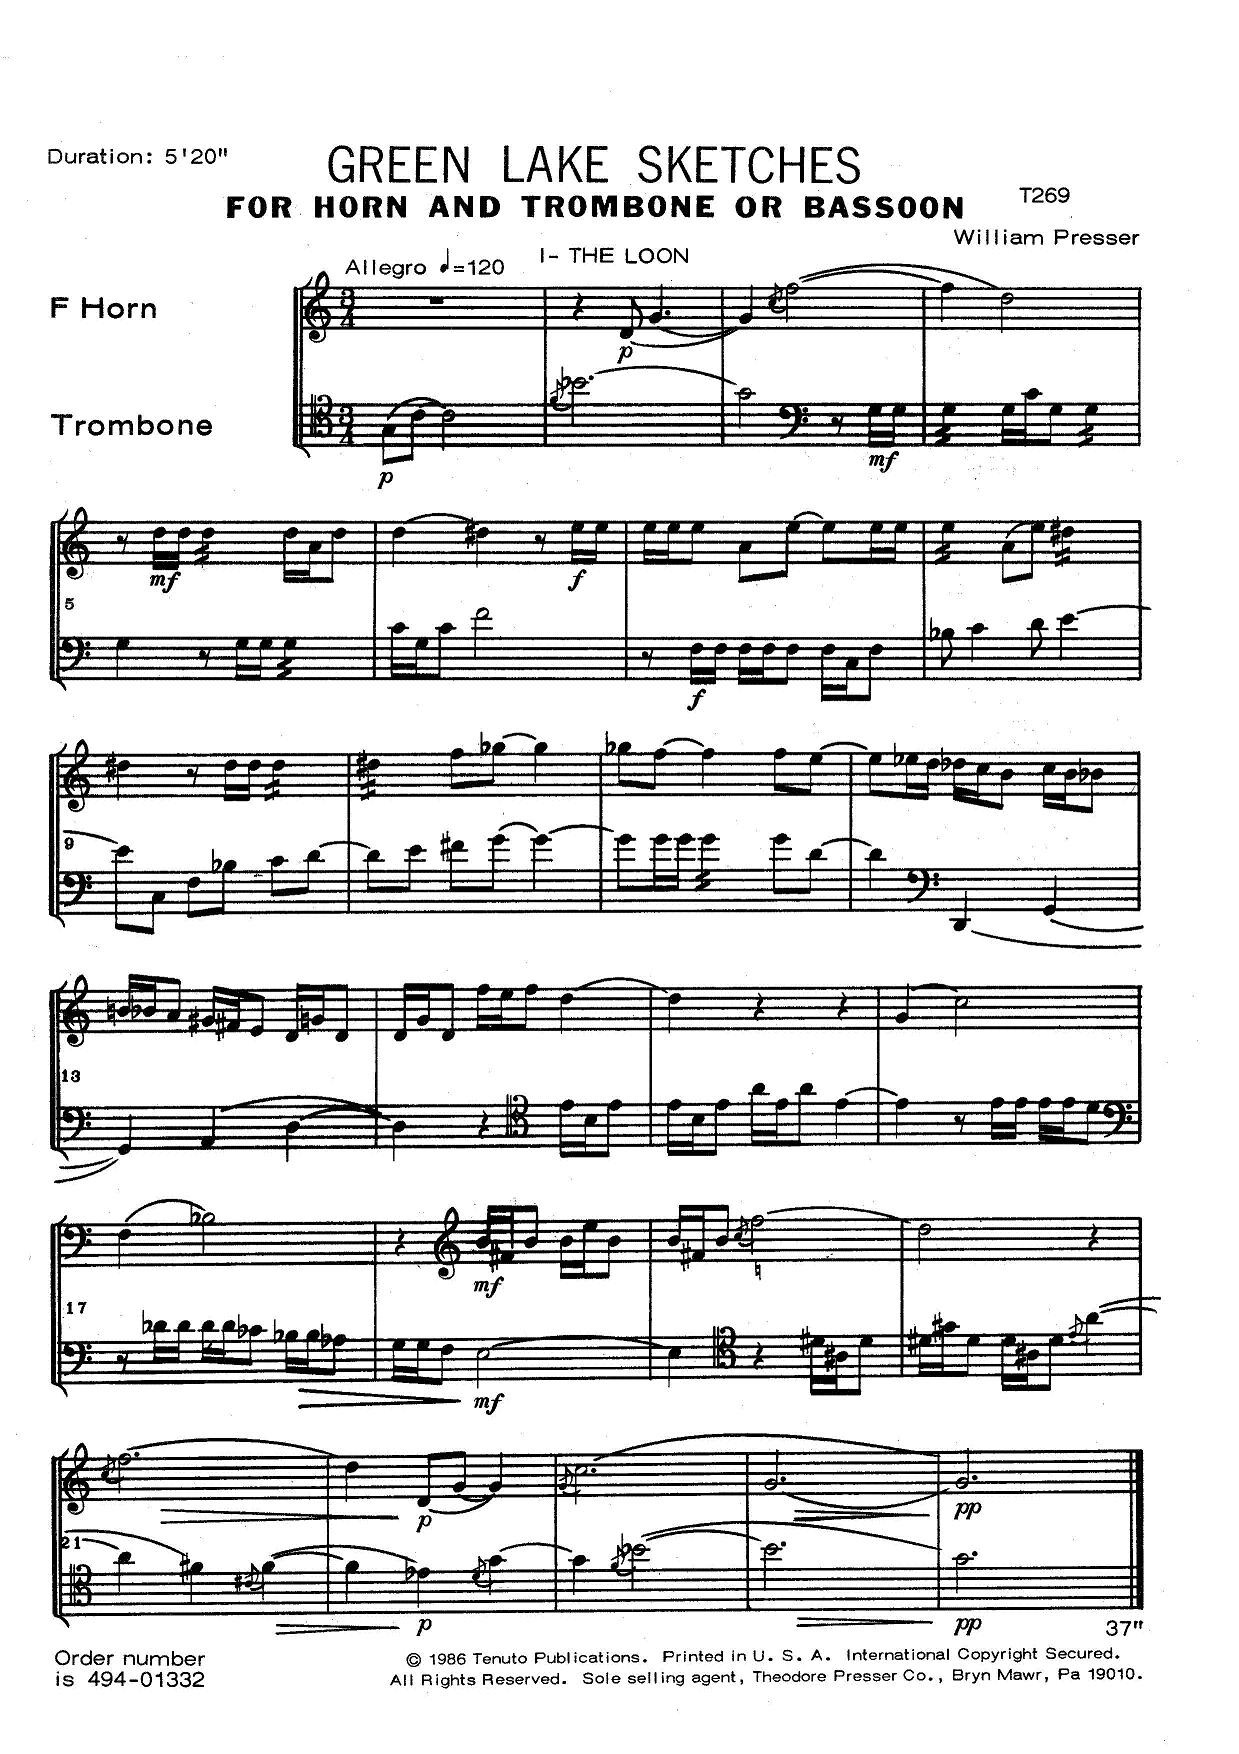 Green Lake Sketches for Horn and Trombone or Bassoon by William Presser